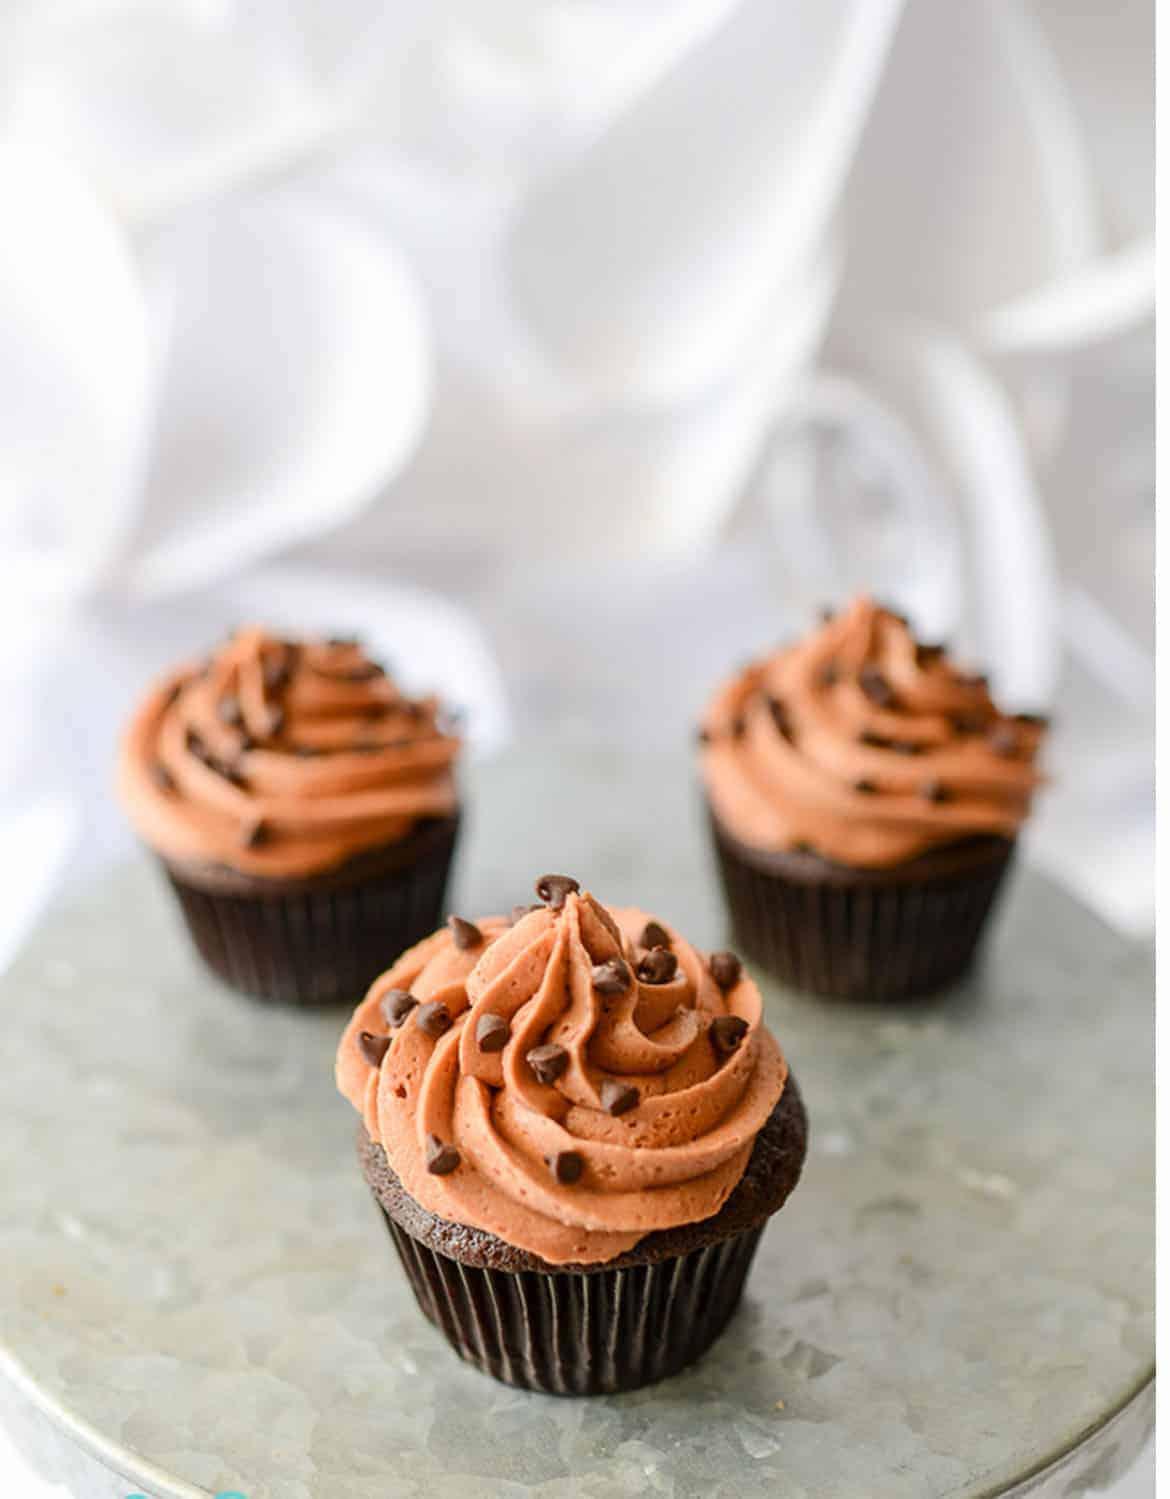 Three chocolate cupcakes decorated with frosting and chocolate chips - Tikkido